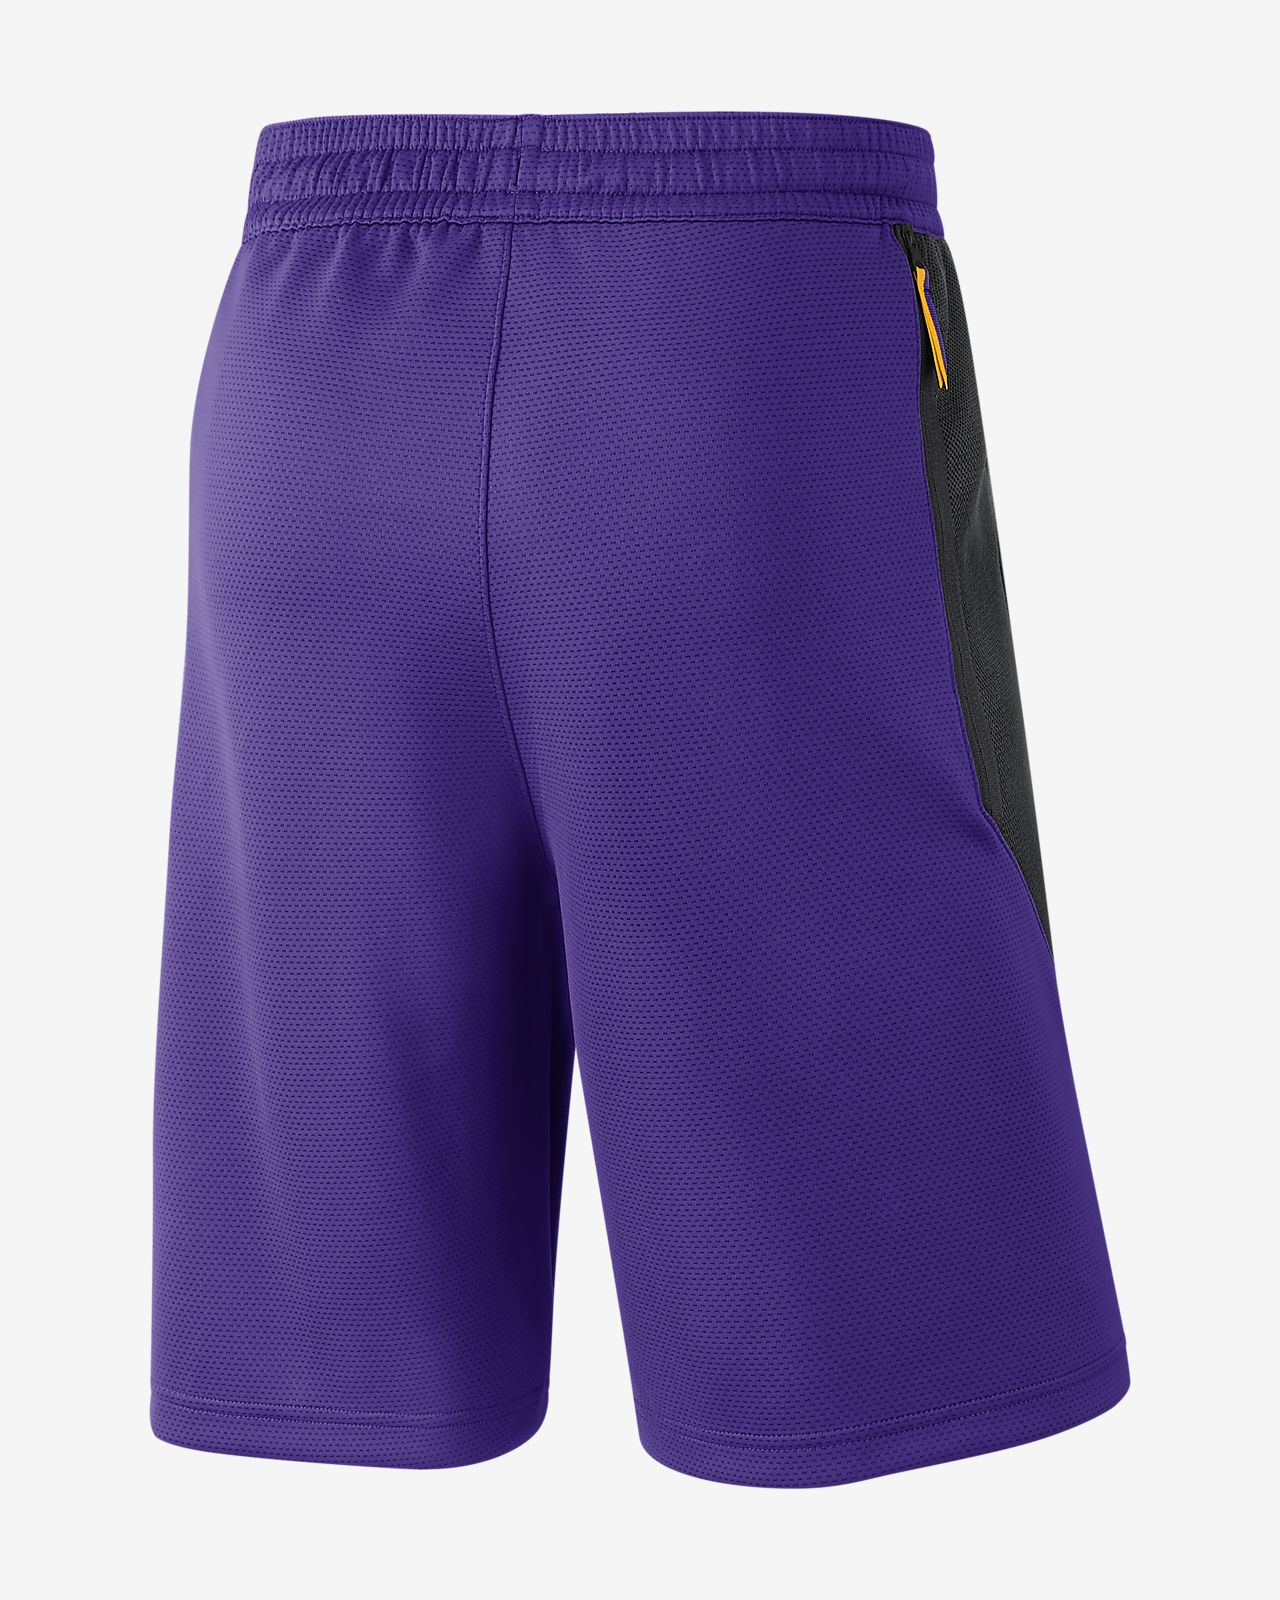 07f87db8d80e Los Angeles Lakers Nike Therma Flex Men s NBA Shorts. Nike.com